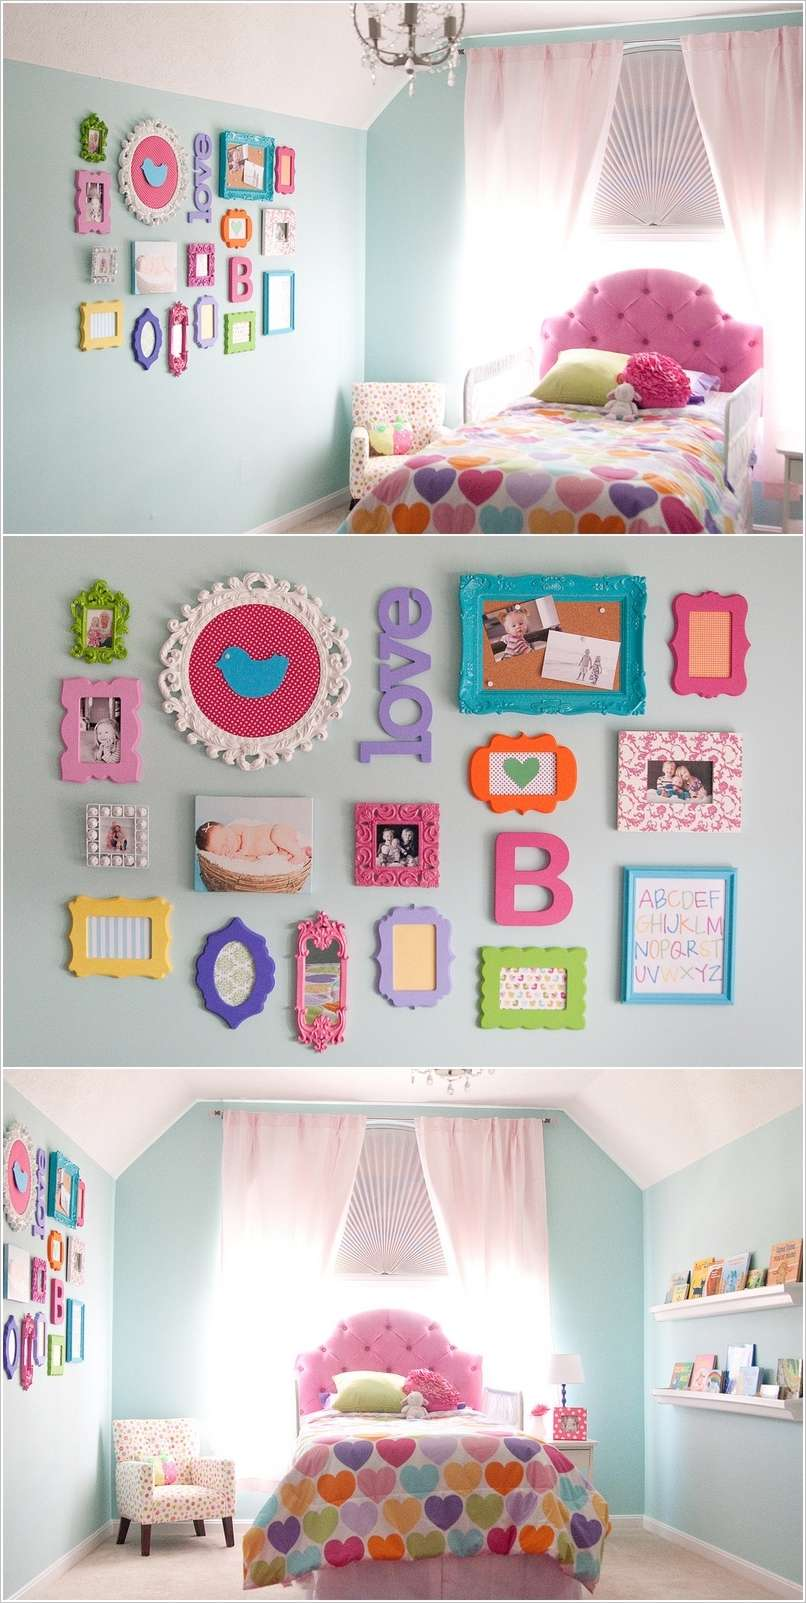 10 Cute Ideas To Decorate A Toddler Girl 39 S Room